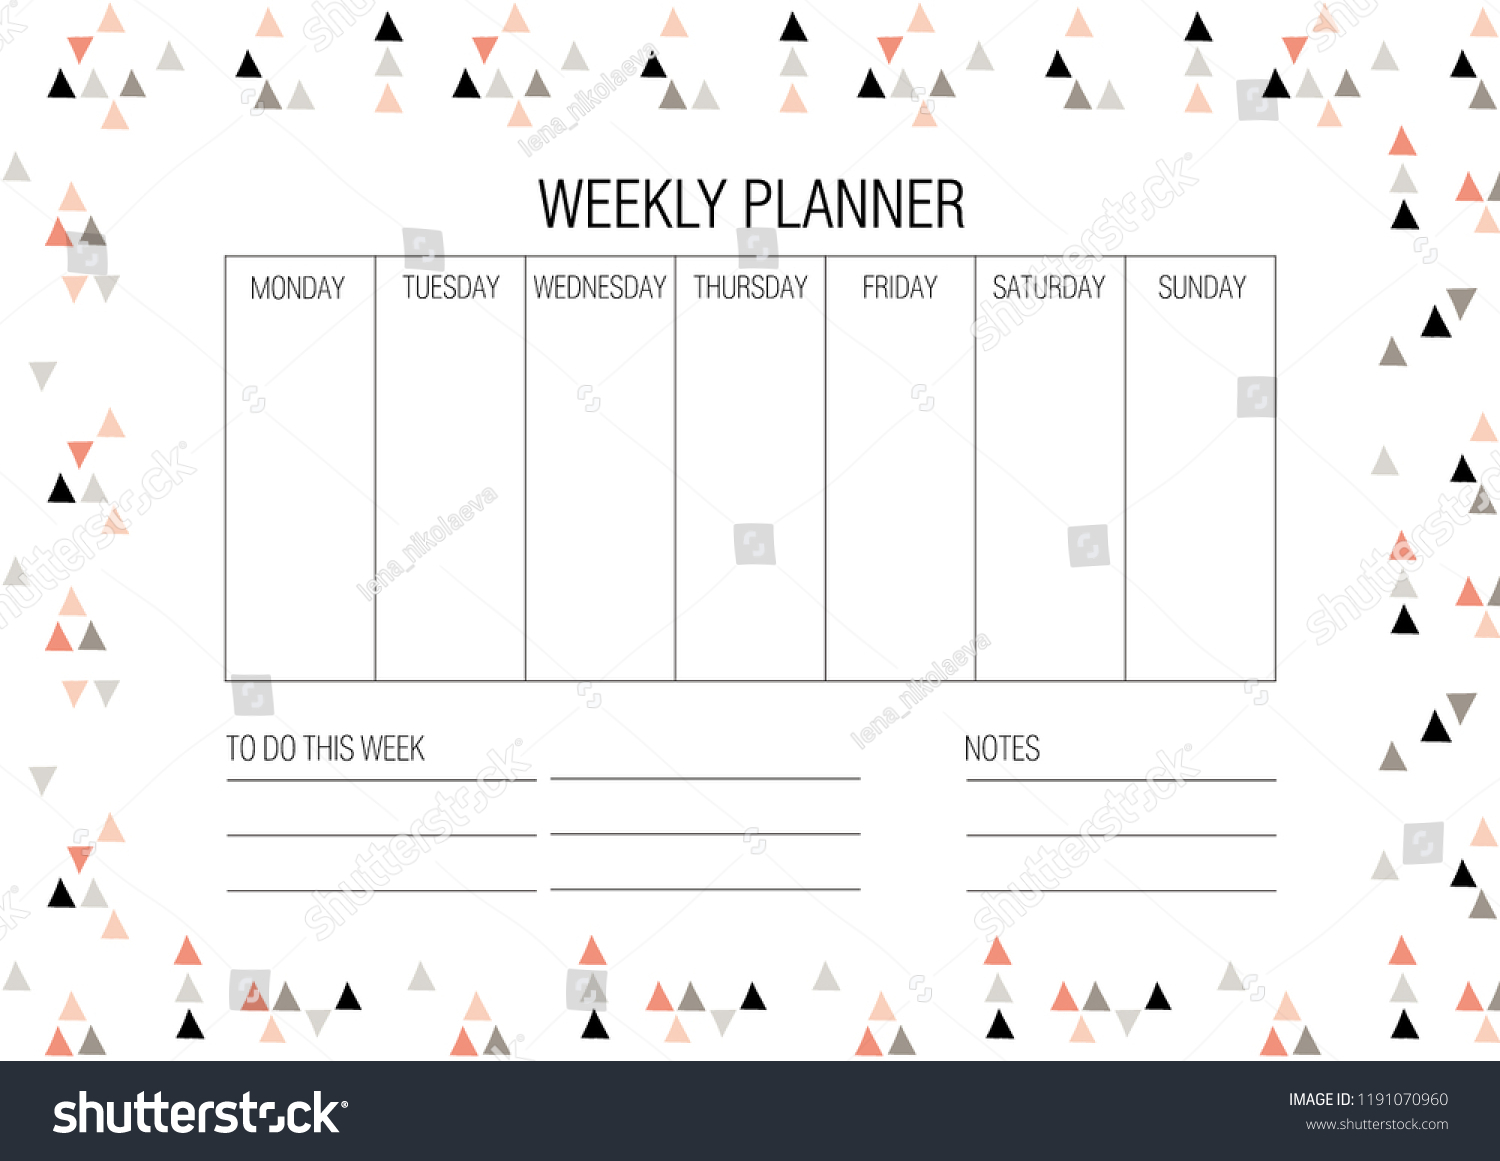 Стоковая Векторная Графика «Weekly Planner Template Vector with Monday To Friday Planner Template